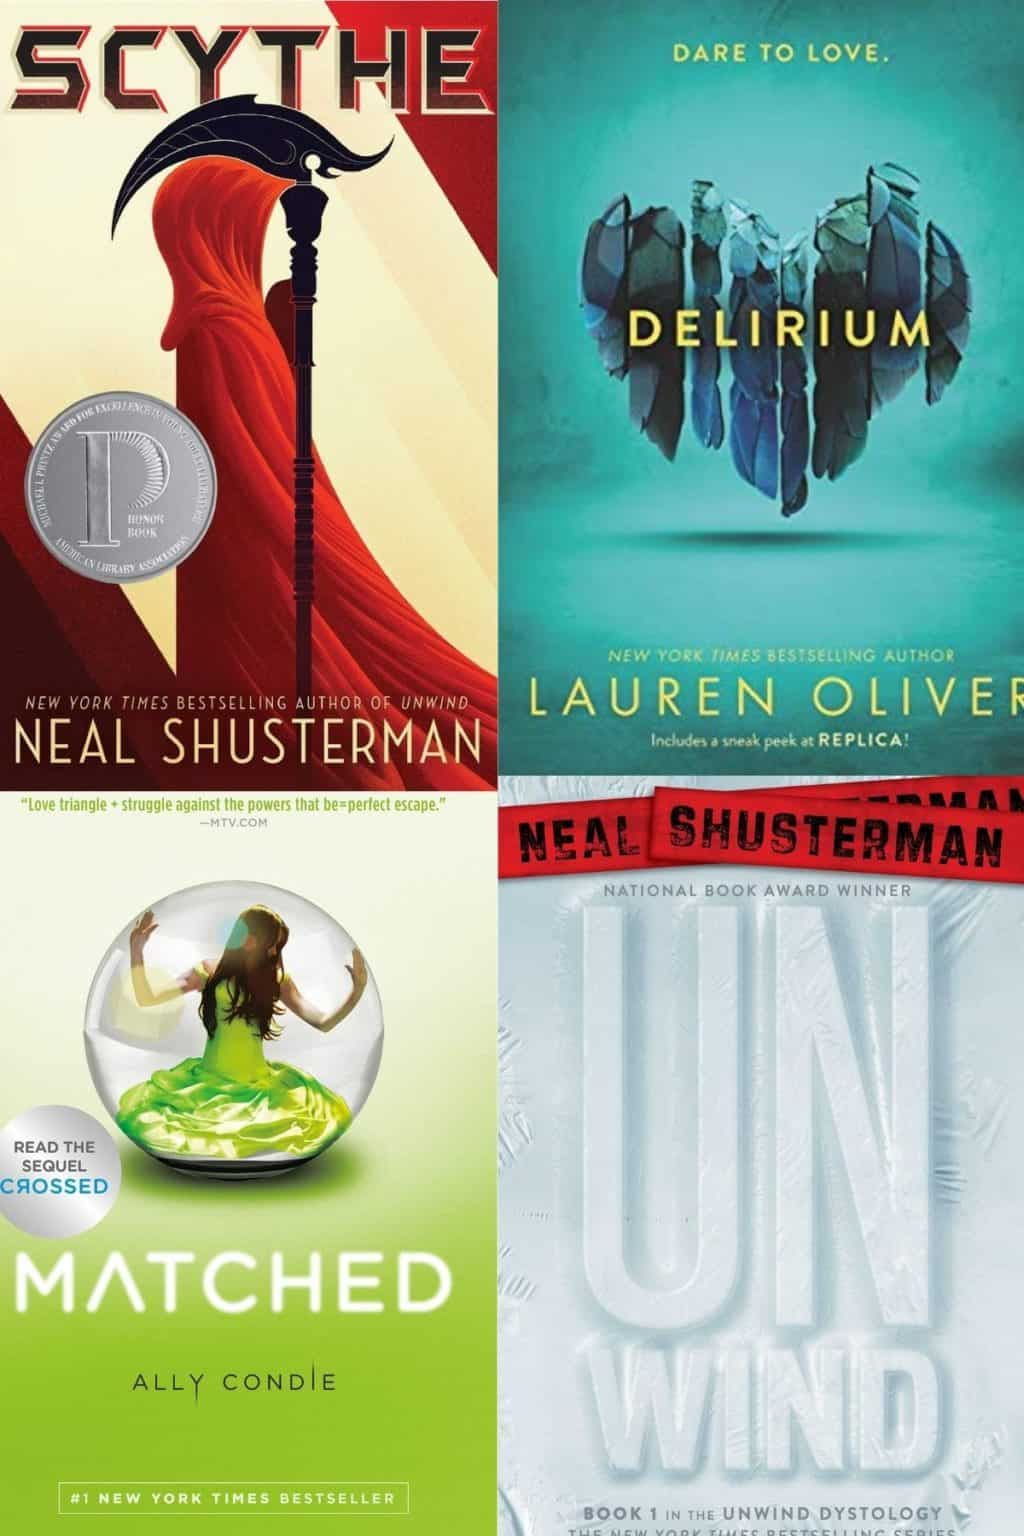 The covers of four YA Dystopian Novels including Scythe, Delirium, Matched, and UnWind.